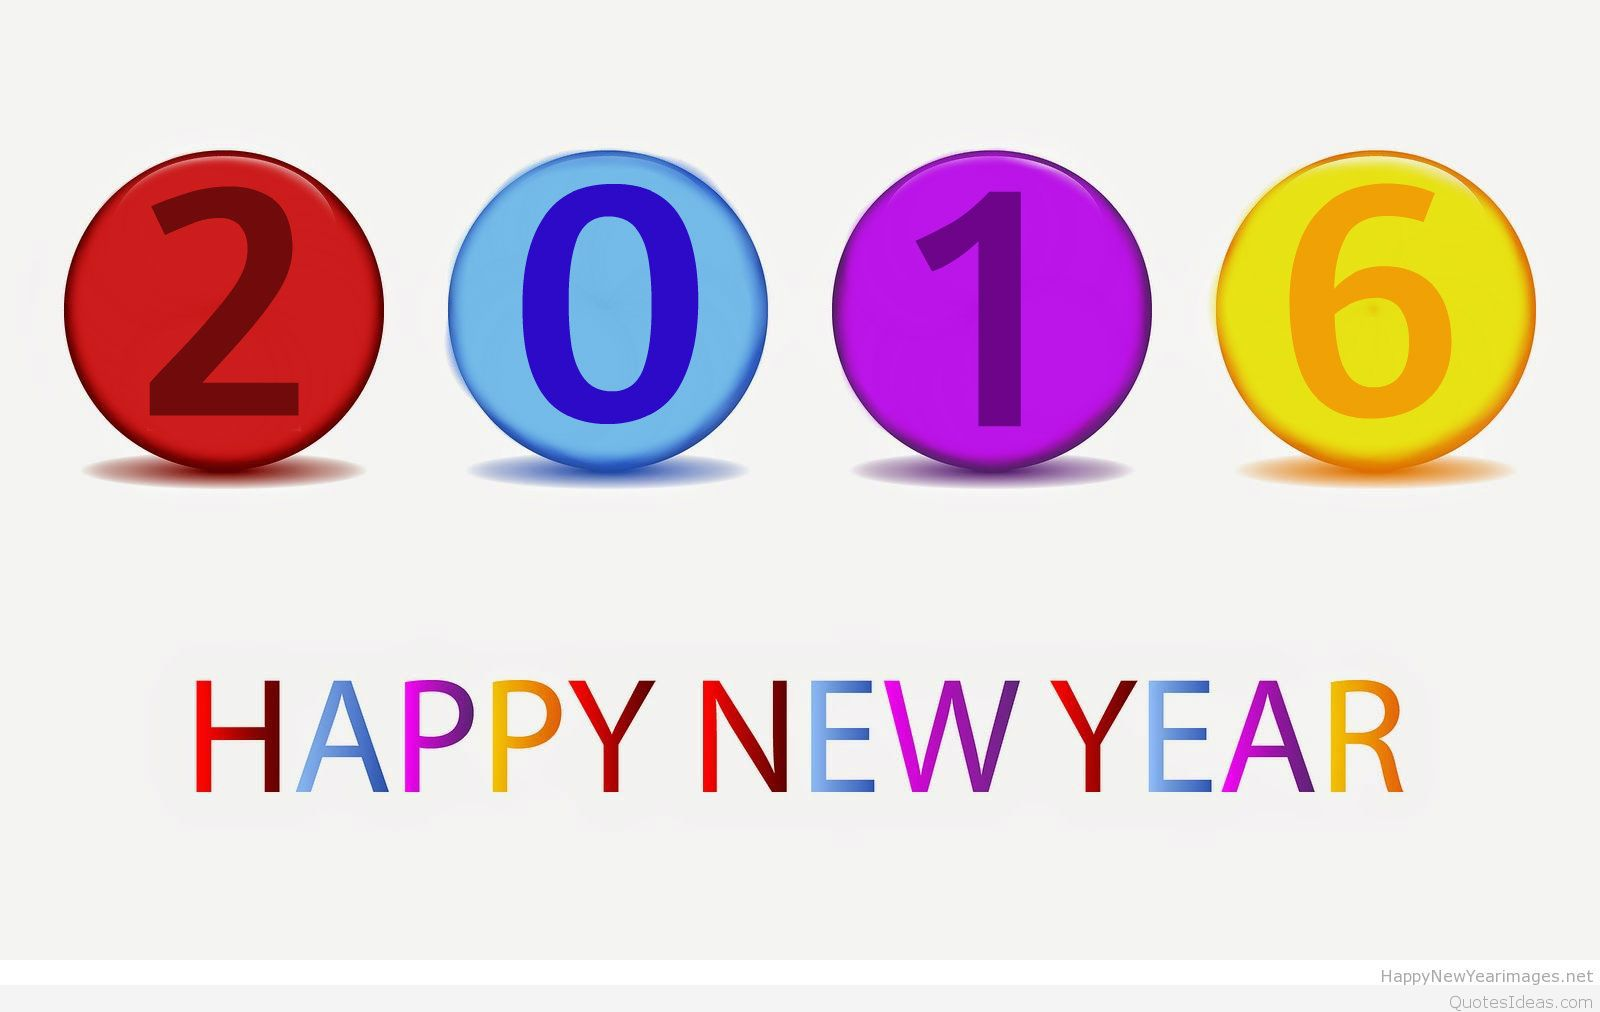 Happy new year clipart 2016 free.